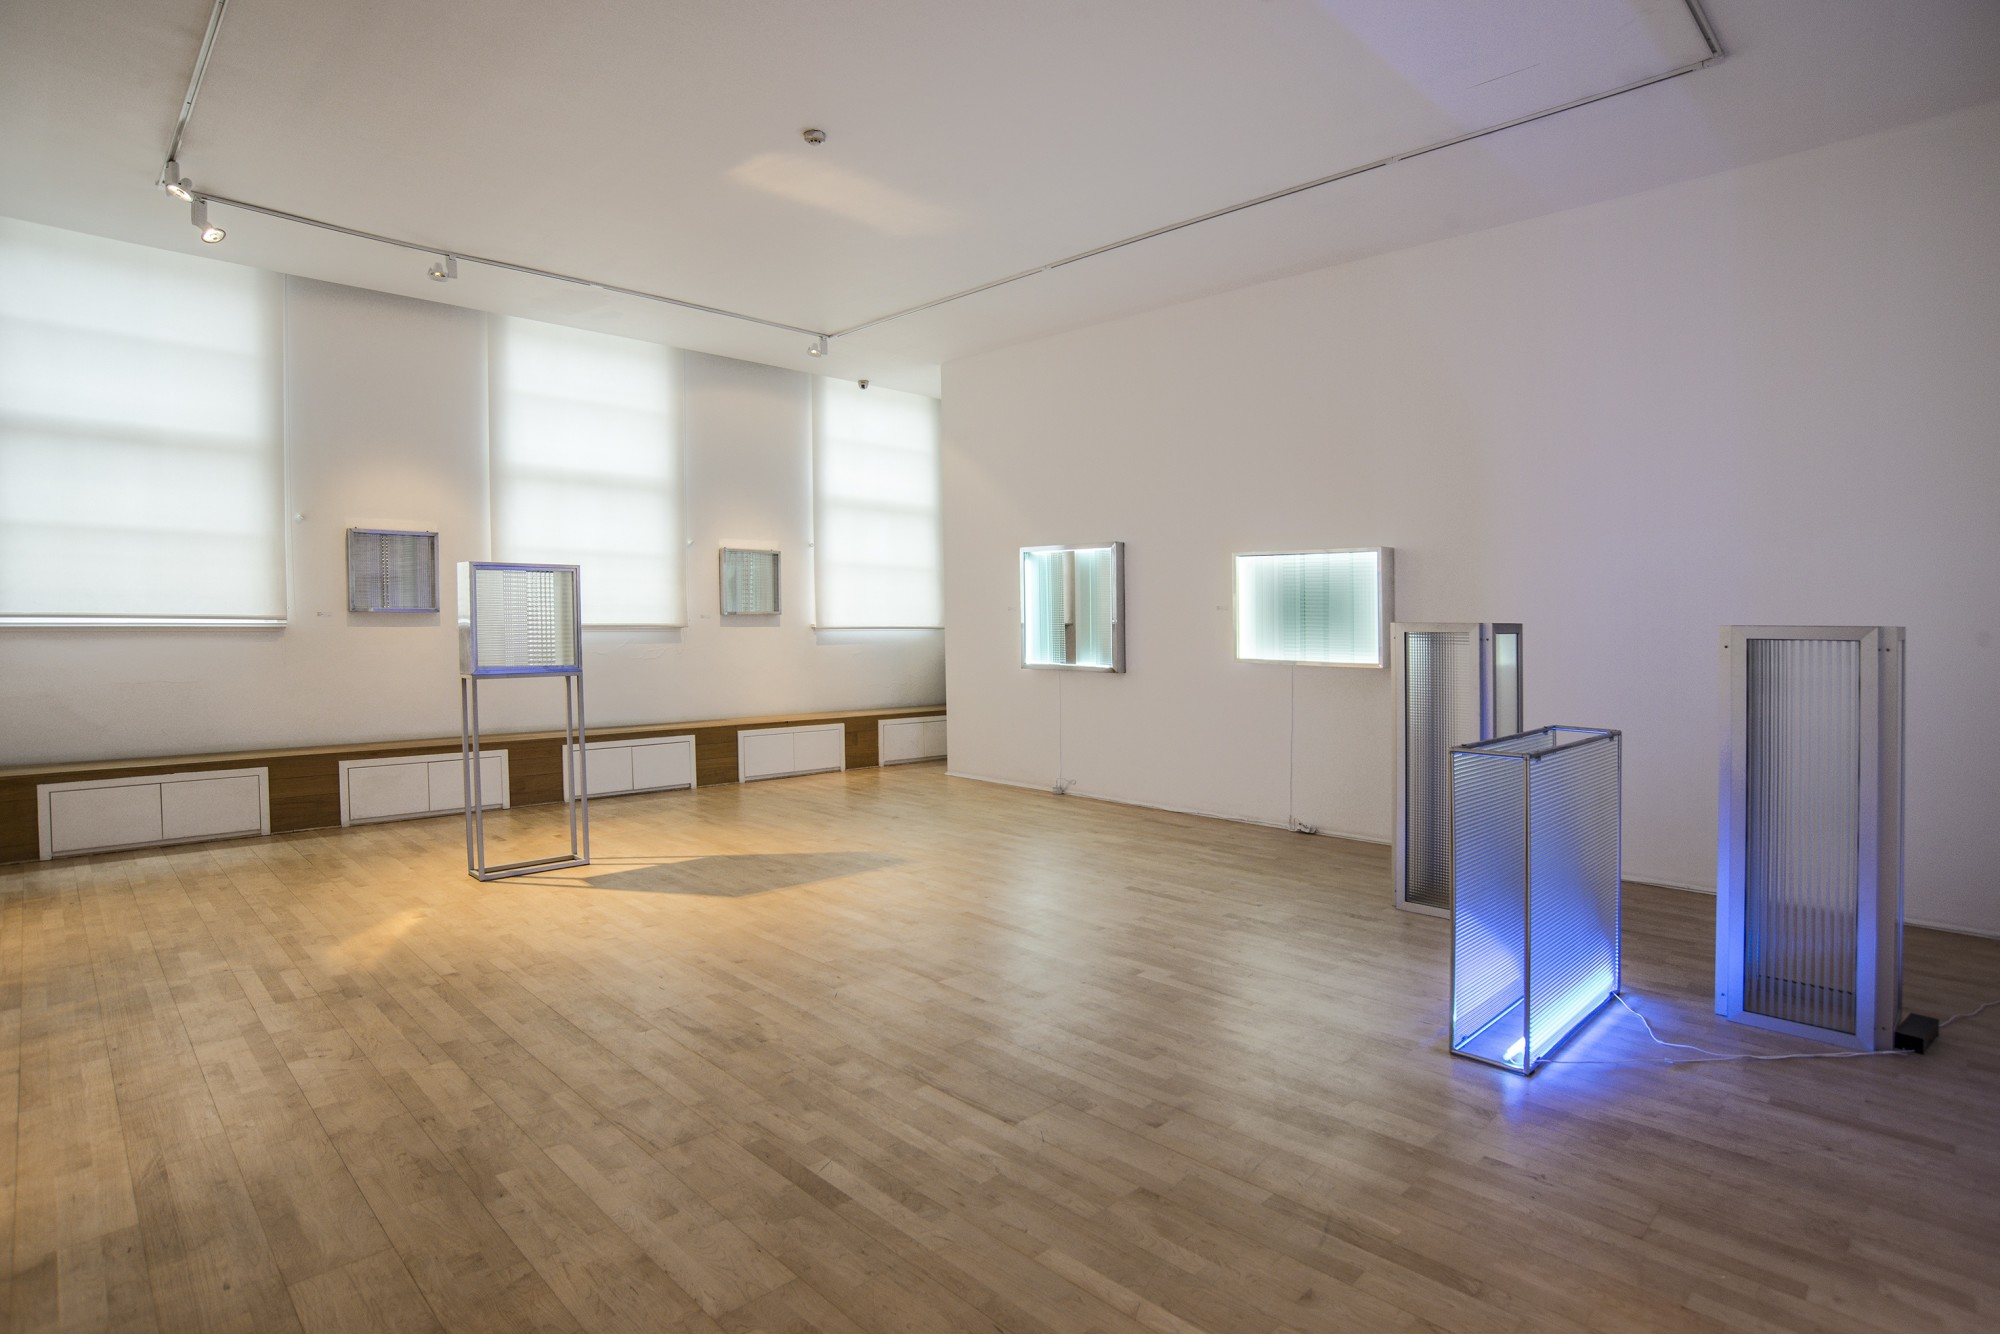 """<span class=""""link fancybox-details-link""""><a href=""""/exhibitions/58/works/image_standalone64/"""">View Detail Page</a></span><p>NANDA VIGO   CHRONOTOPS   10 SEP - 24 OCT 2014   Installation View</p>"""